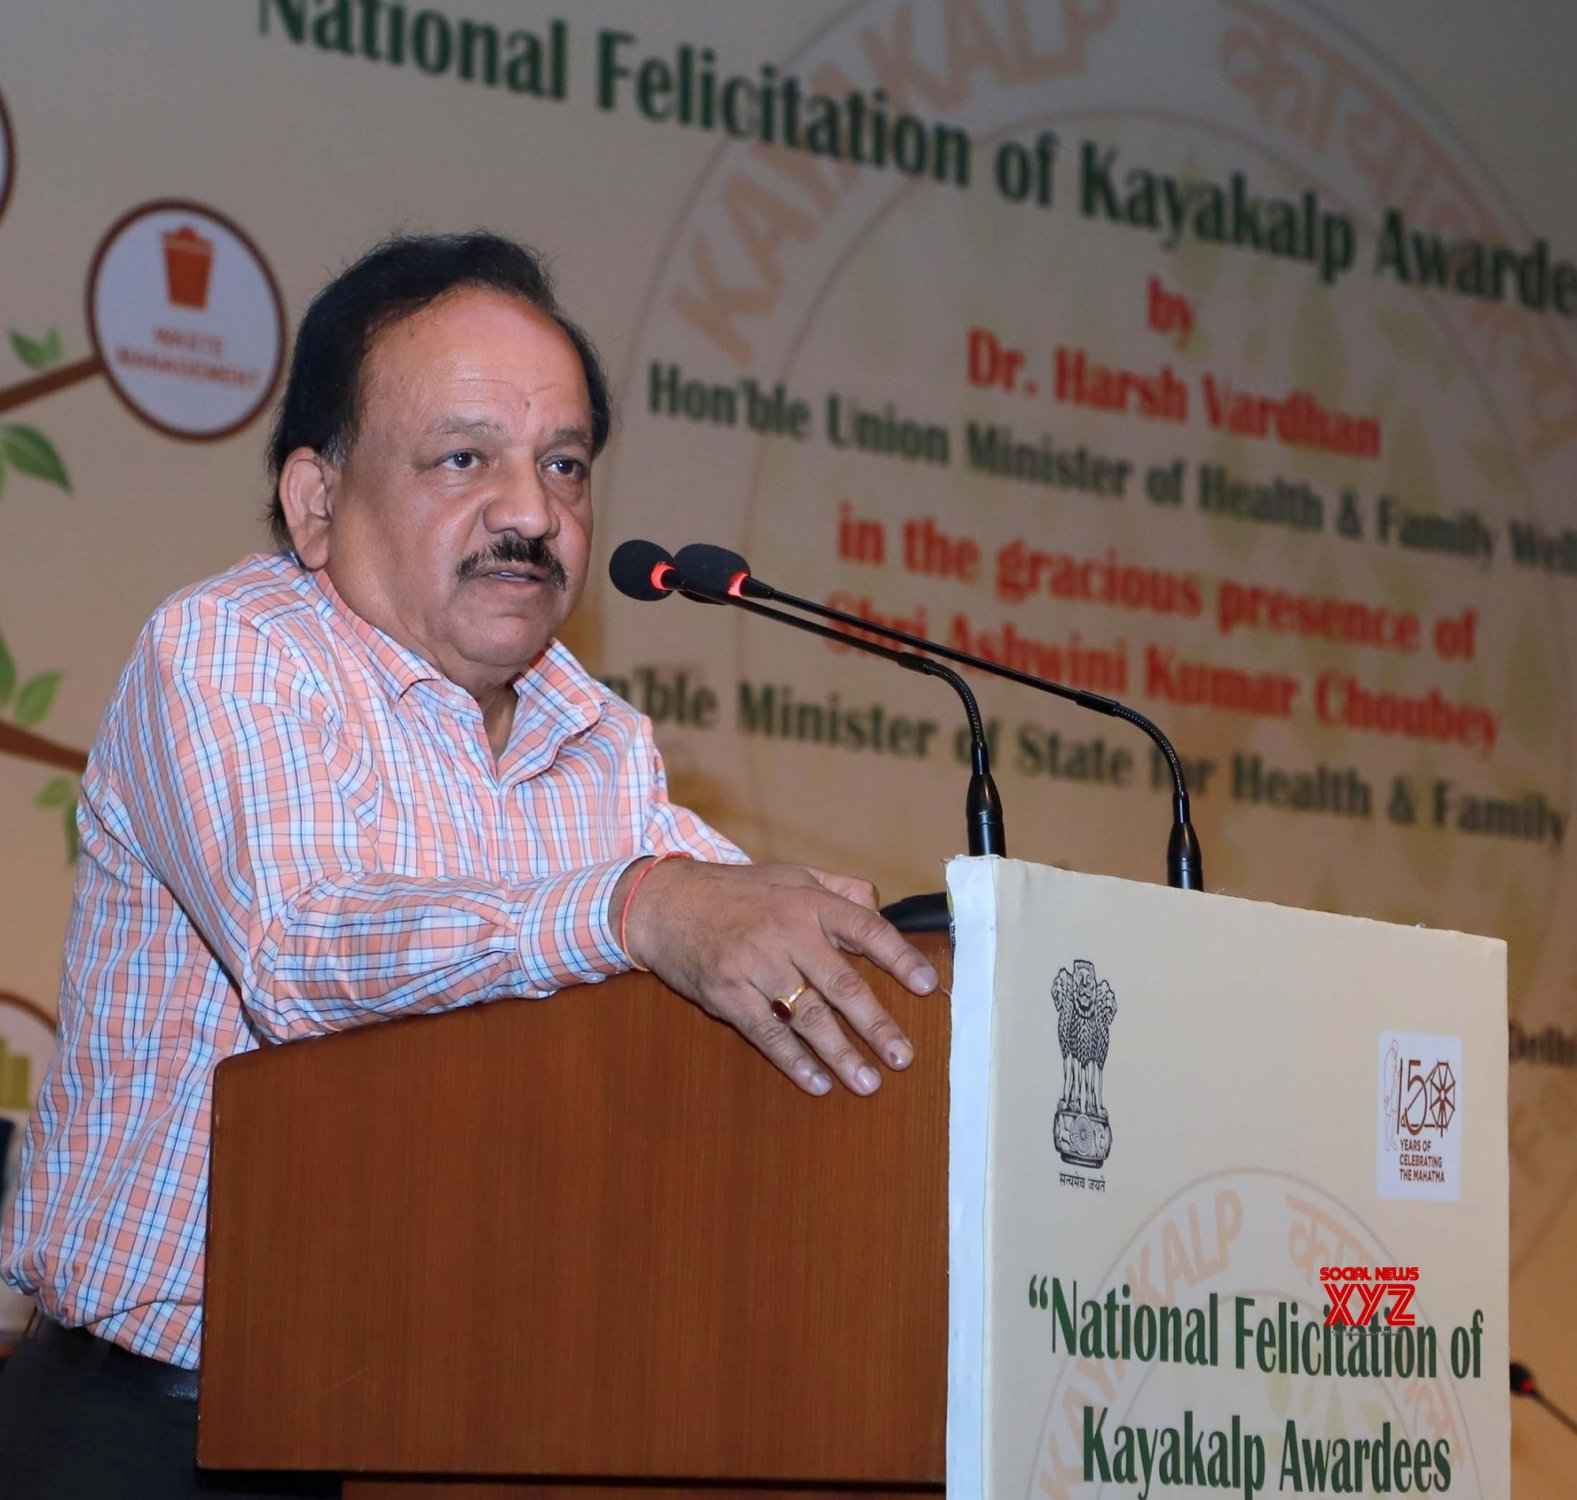 New Delhi: National Felicitation of Kayakalp Awardees 2018 - 19 #Gallery